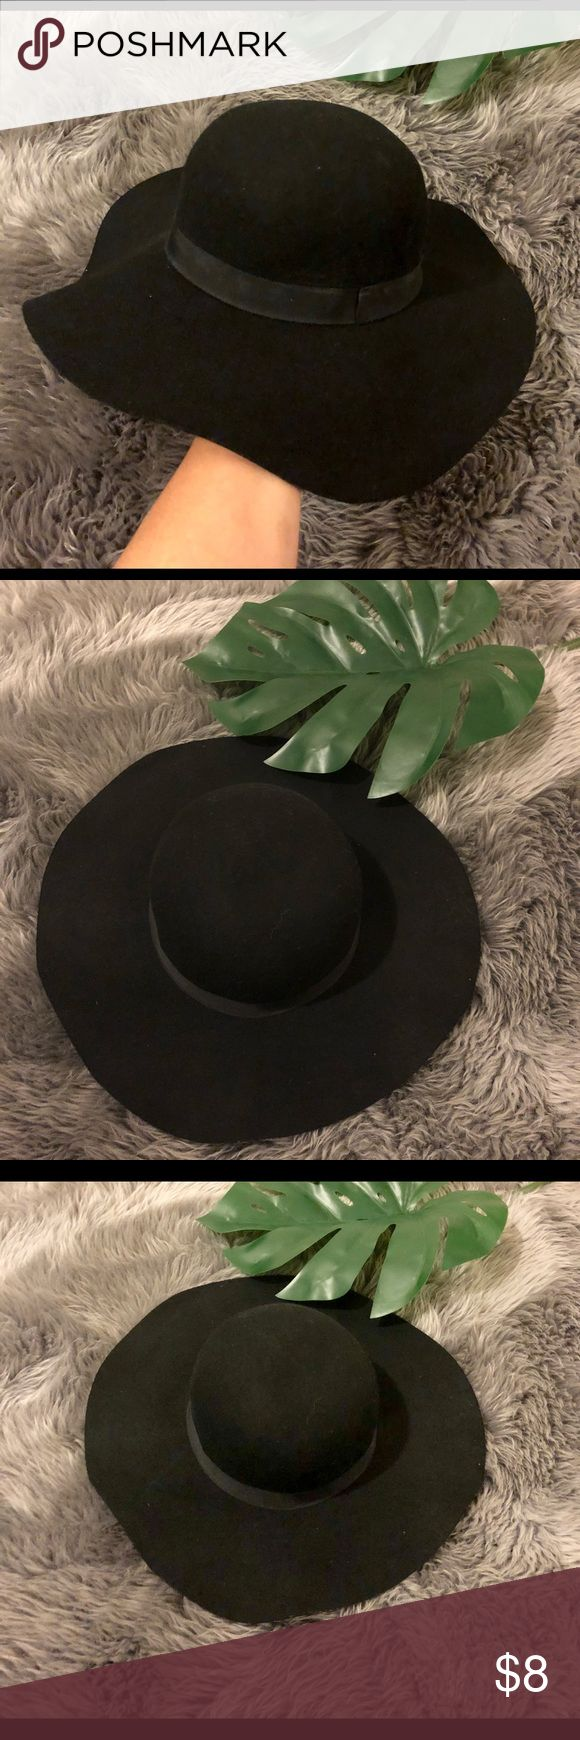 JLo style floppy hat Black floppy hat. Black ribbon. Accessories Hats